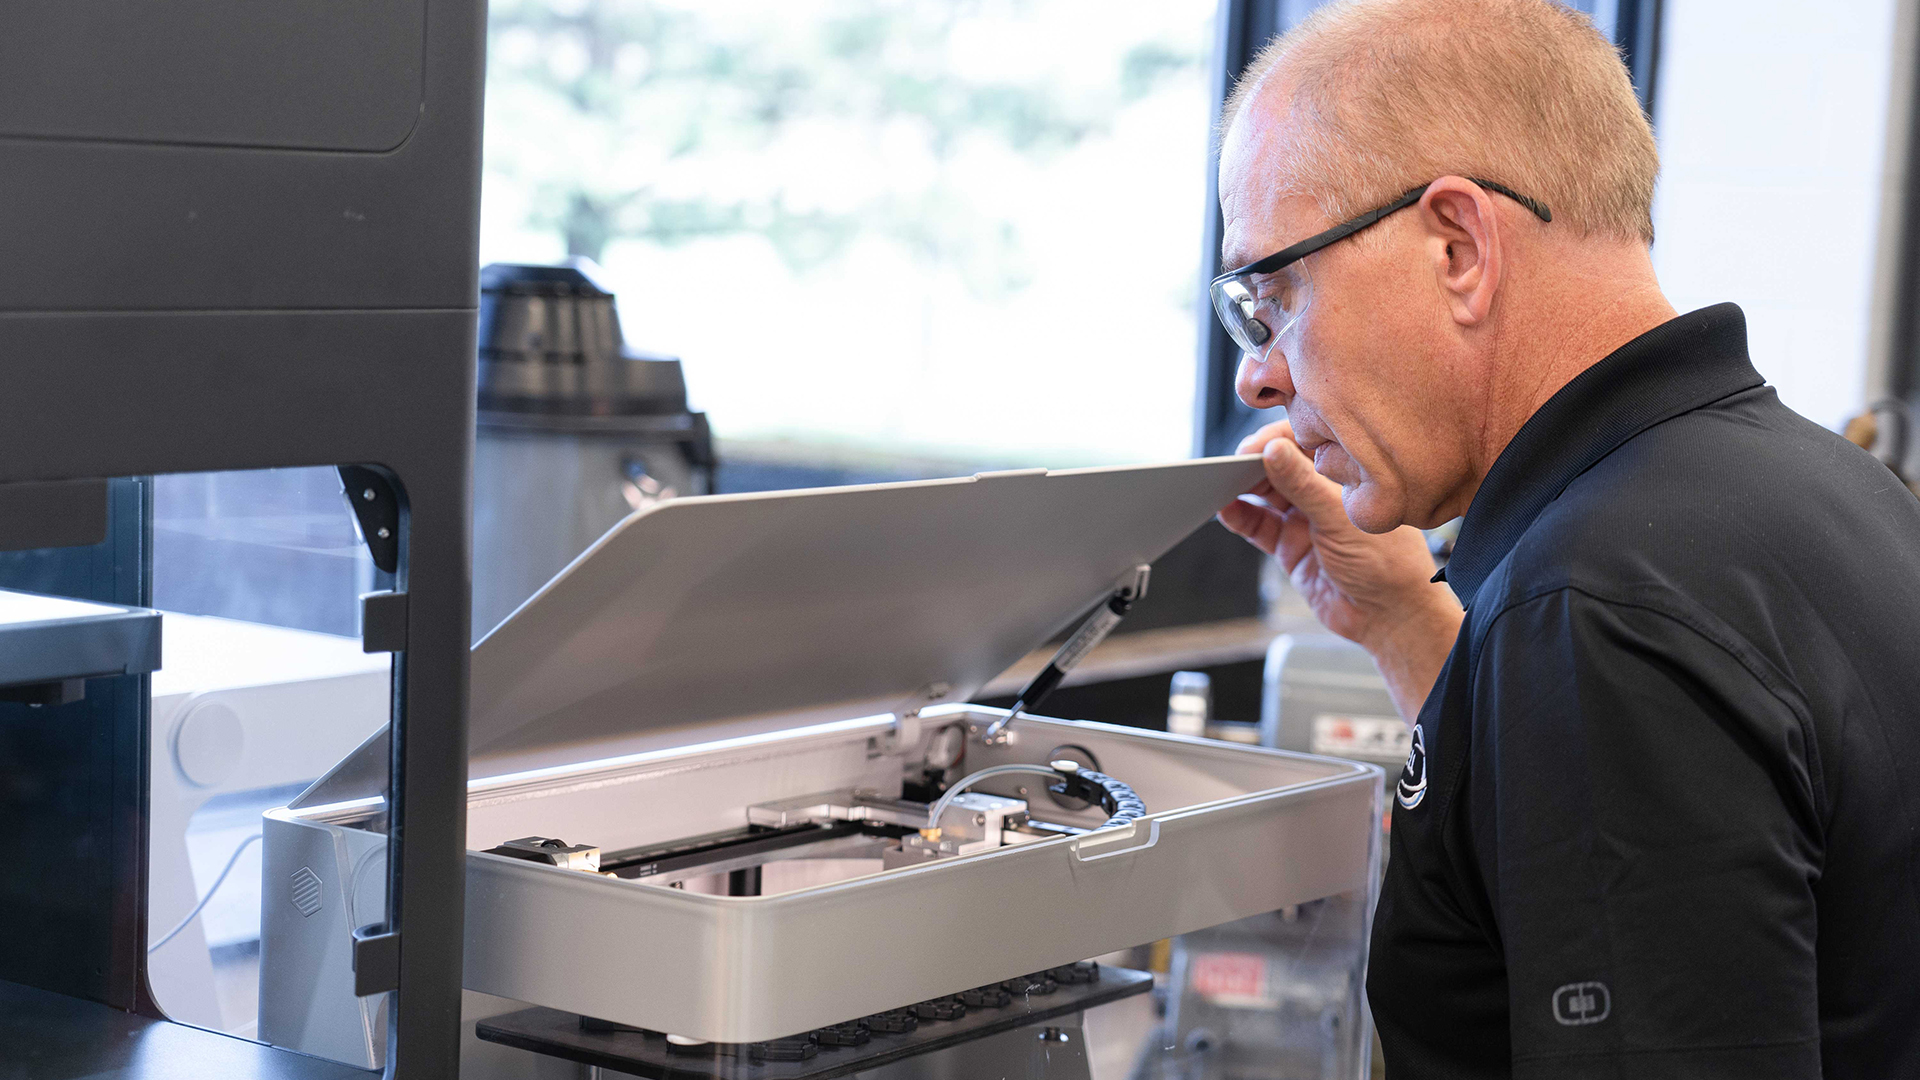 Markforged helps Caldwell Manufacturing integrate additive manufacturing into everything from R&D and internal tools to production parts